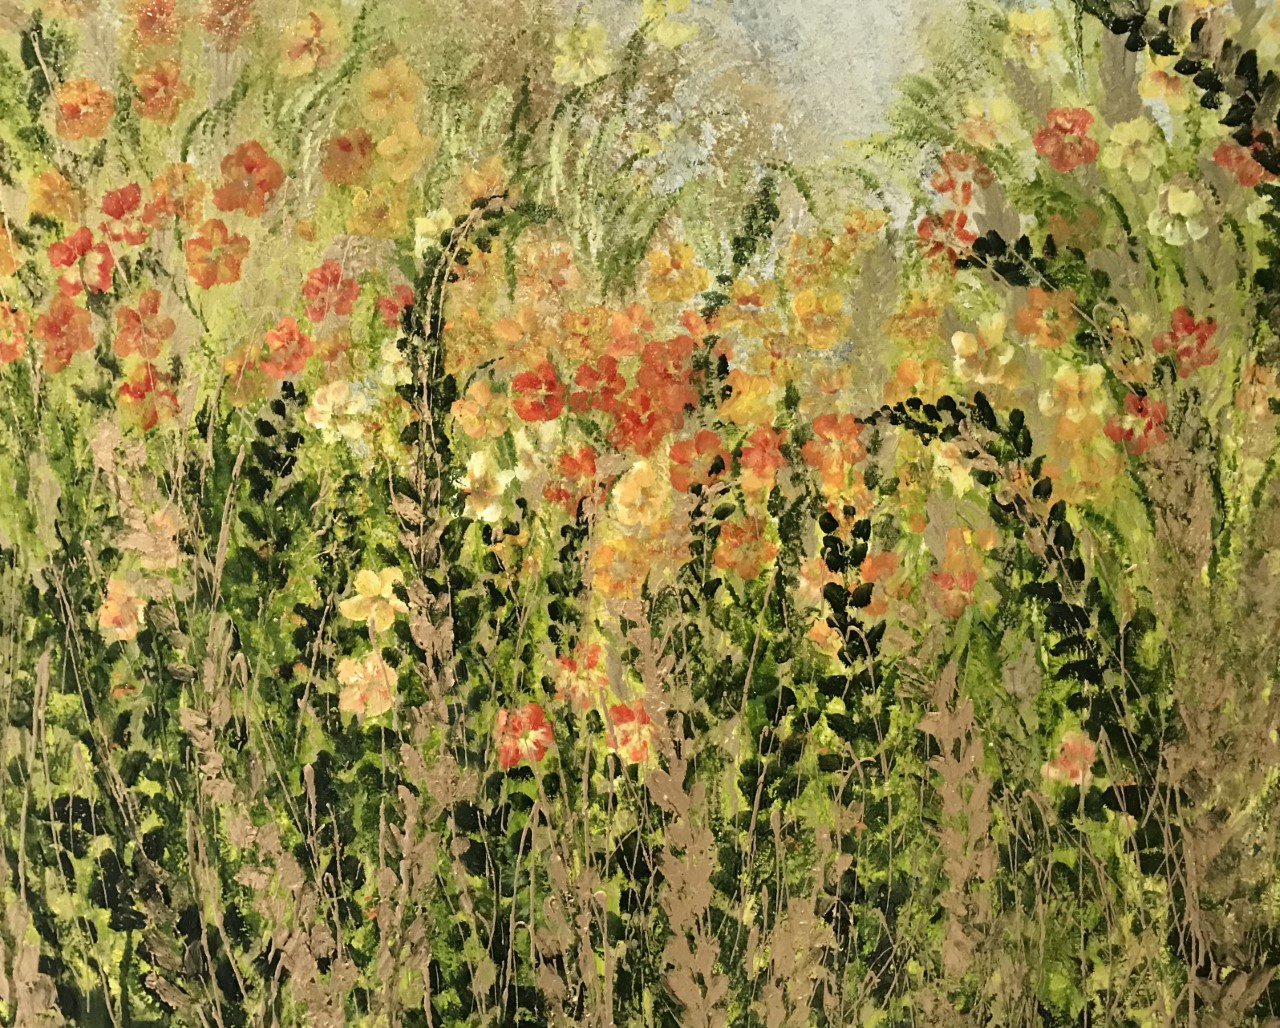 Among the Fields of Gold (this painting has been donated to raise money for the school's PTA)